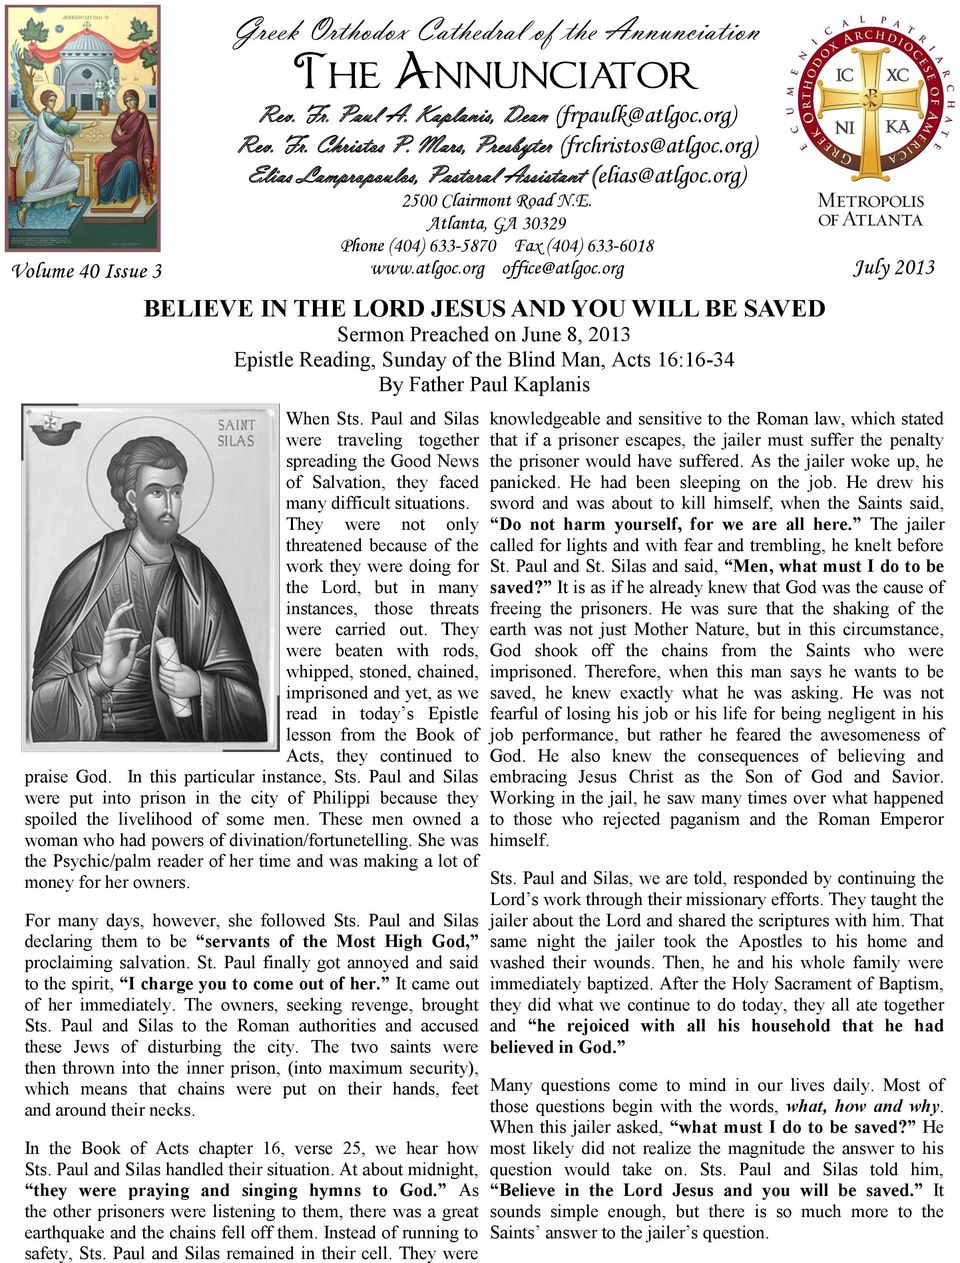 org July 2013 BELIEVE IN THE LORD JESUS AND YOU WILL BE SAVED Sermon Preached on June 8, 2013 Epistle Reading, Sunday of the Blind Man, Acts 16:16-34 By Father Paul Kaplanis When Sts.